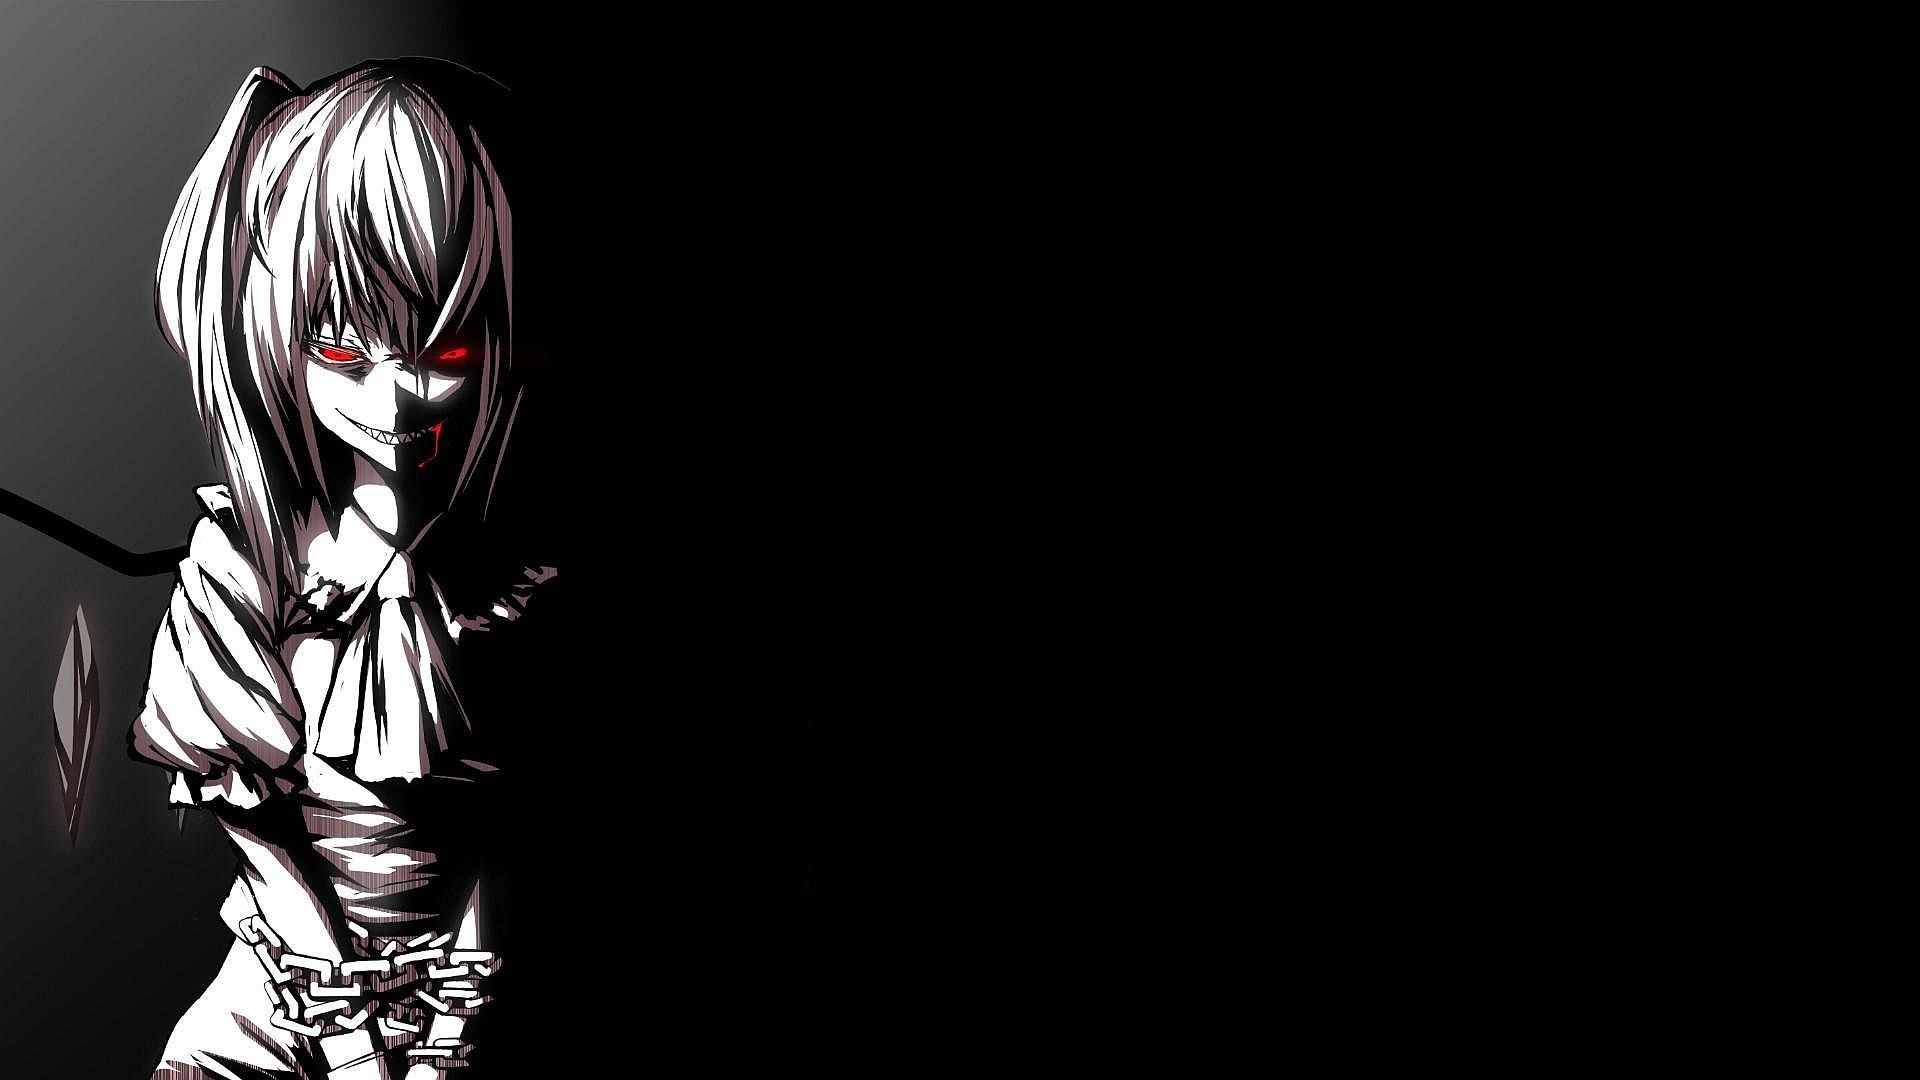 ... 1920x1080 dark evil wallpapers 1440Ã 900 evil backgrounds 41 wallpapers adorable wallpapers ...